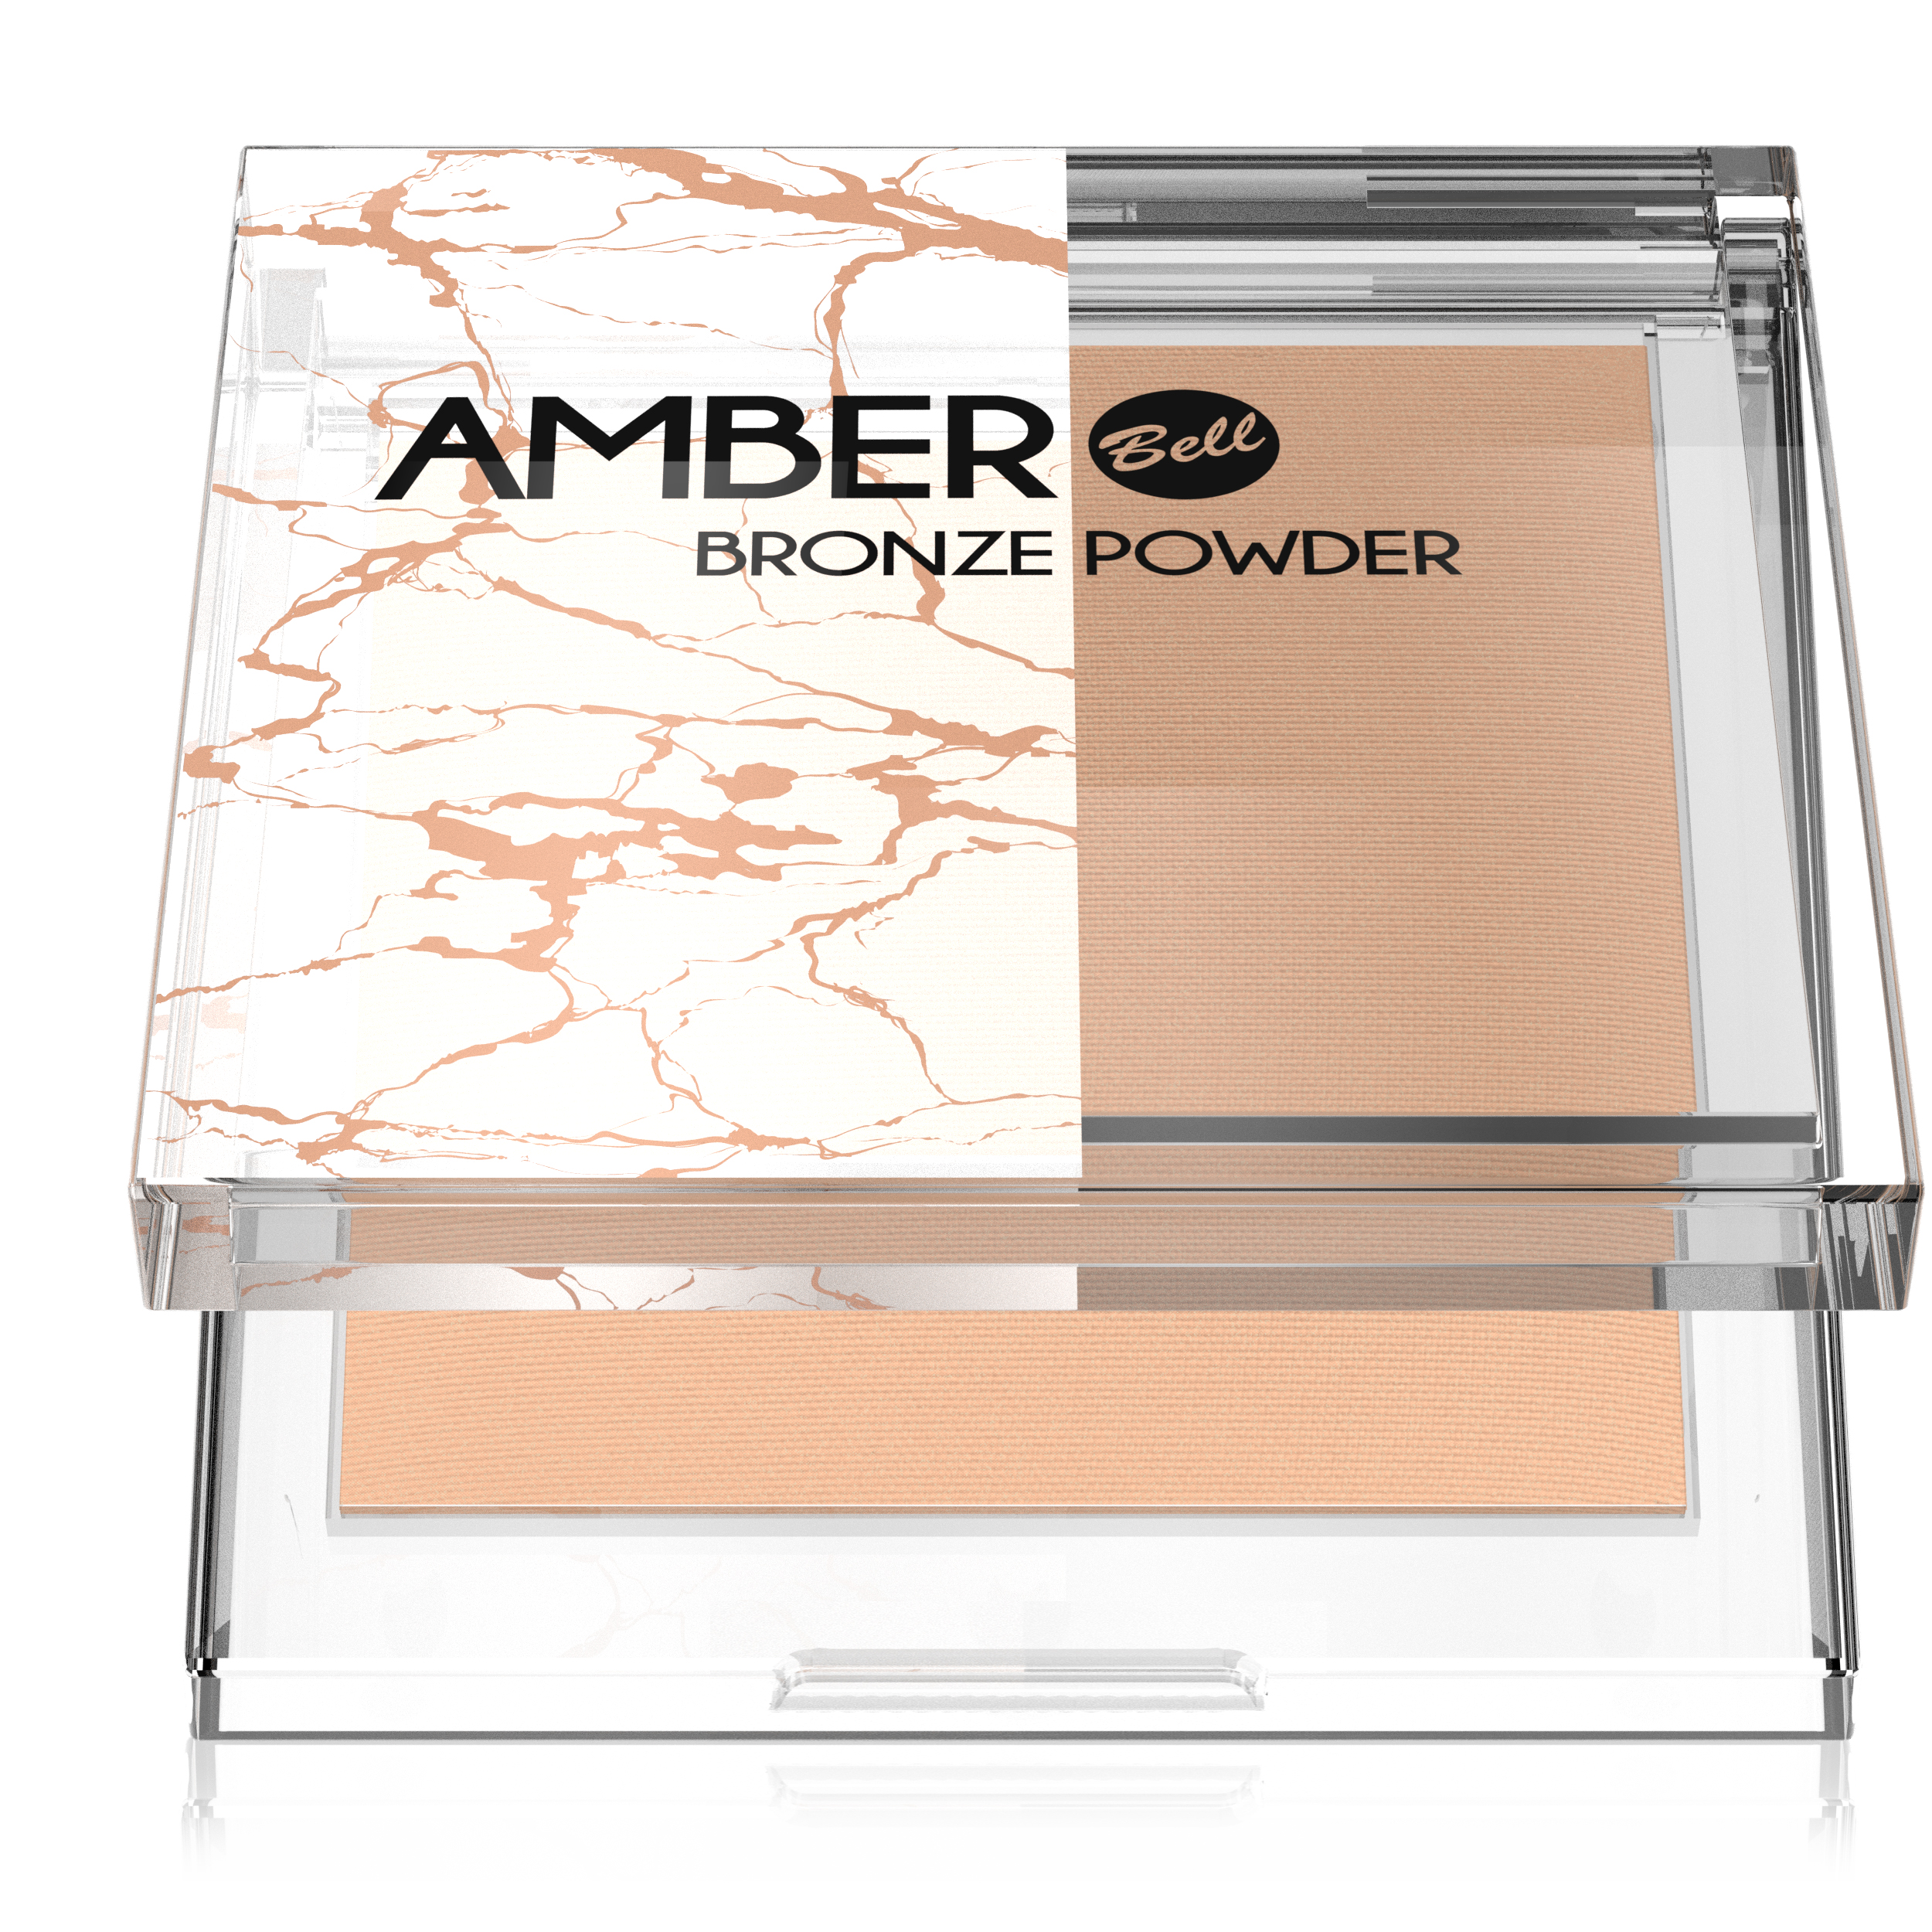 Amber Bronze Powder